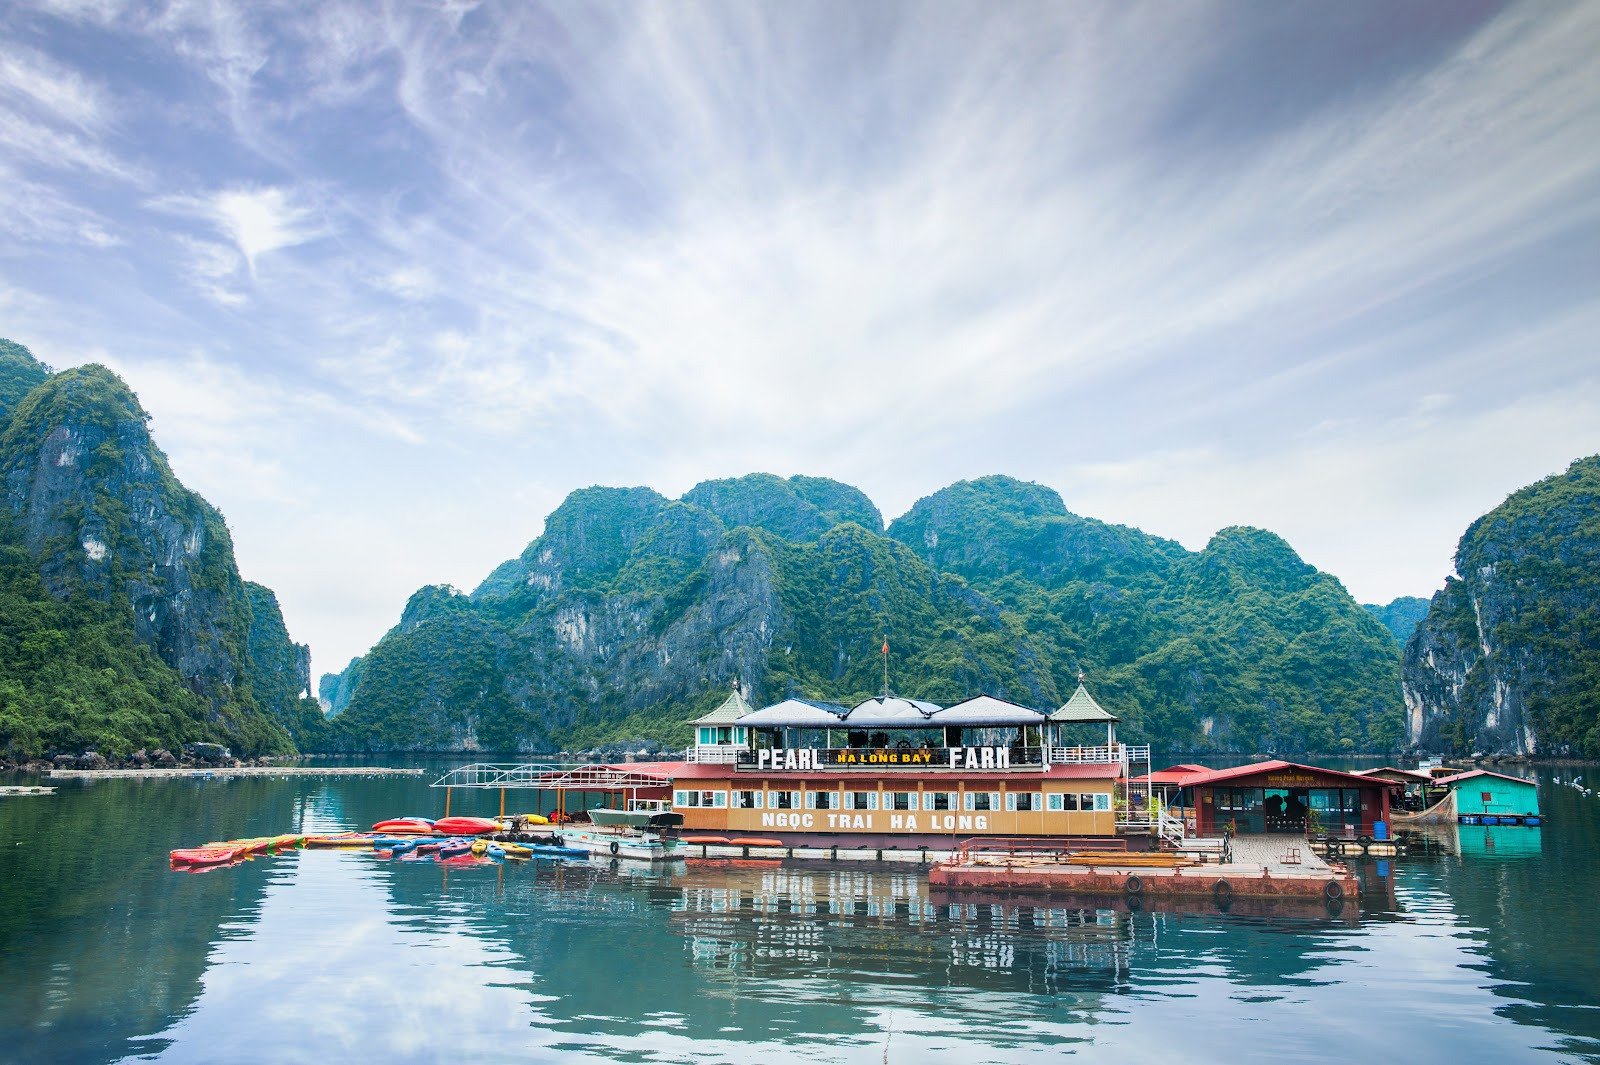 Halong length of Cruise